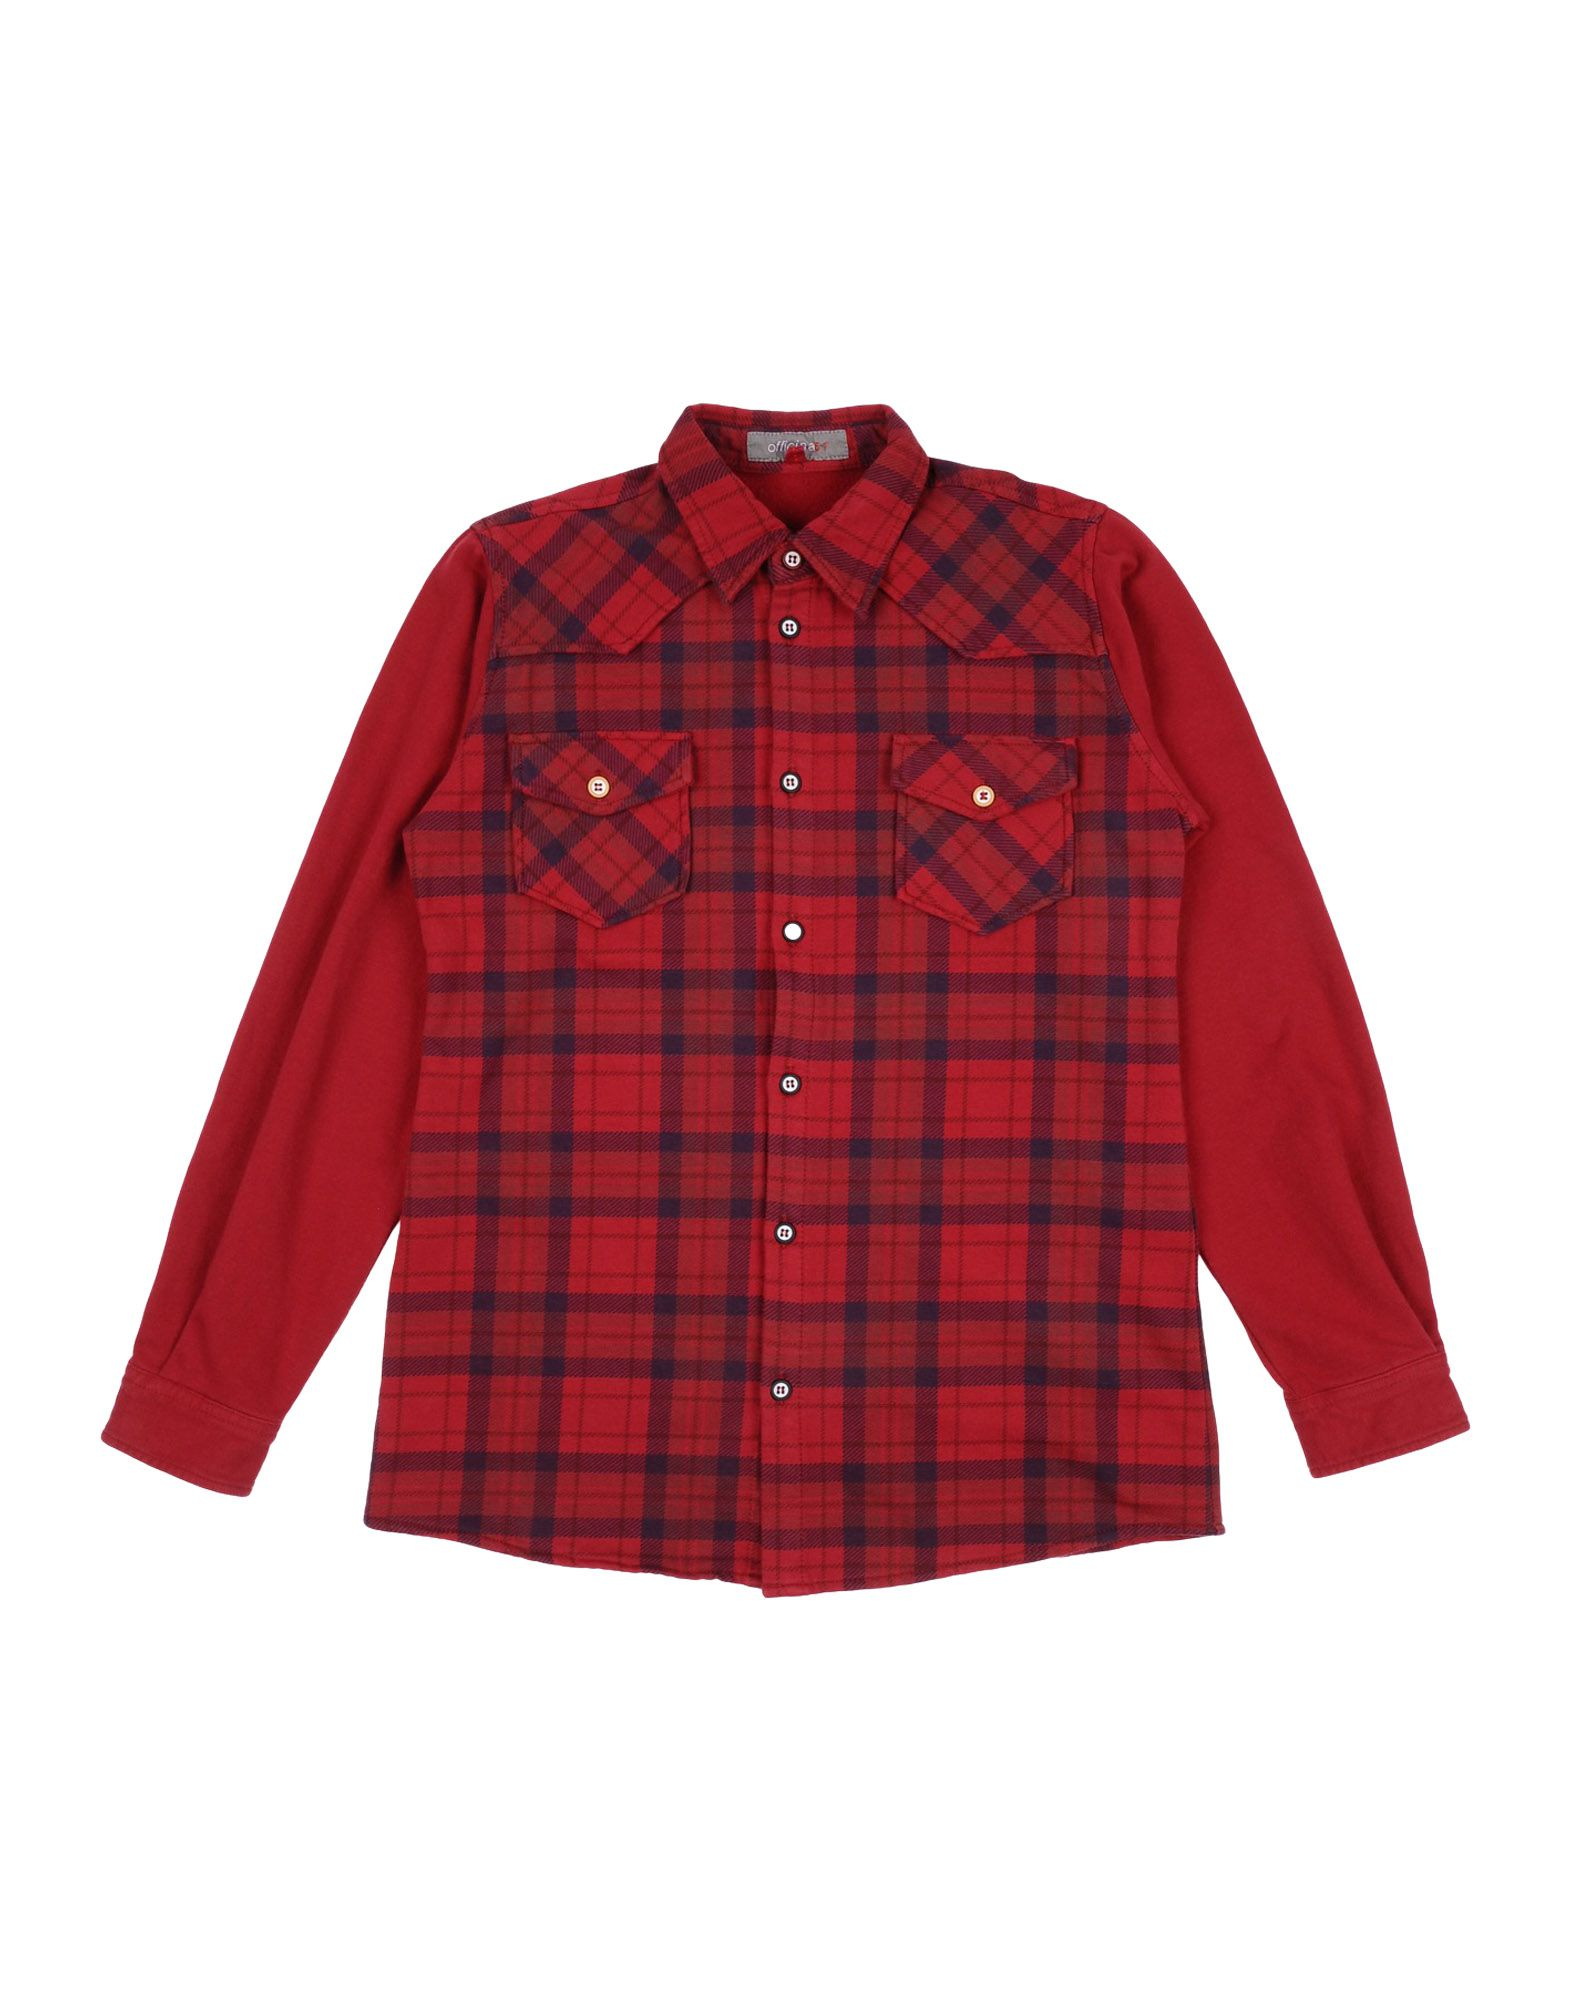 OFFICINA 51 Checked Shirt in Red